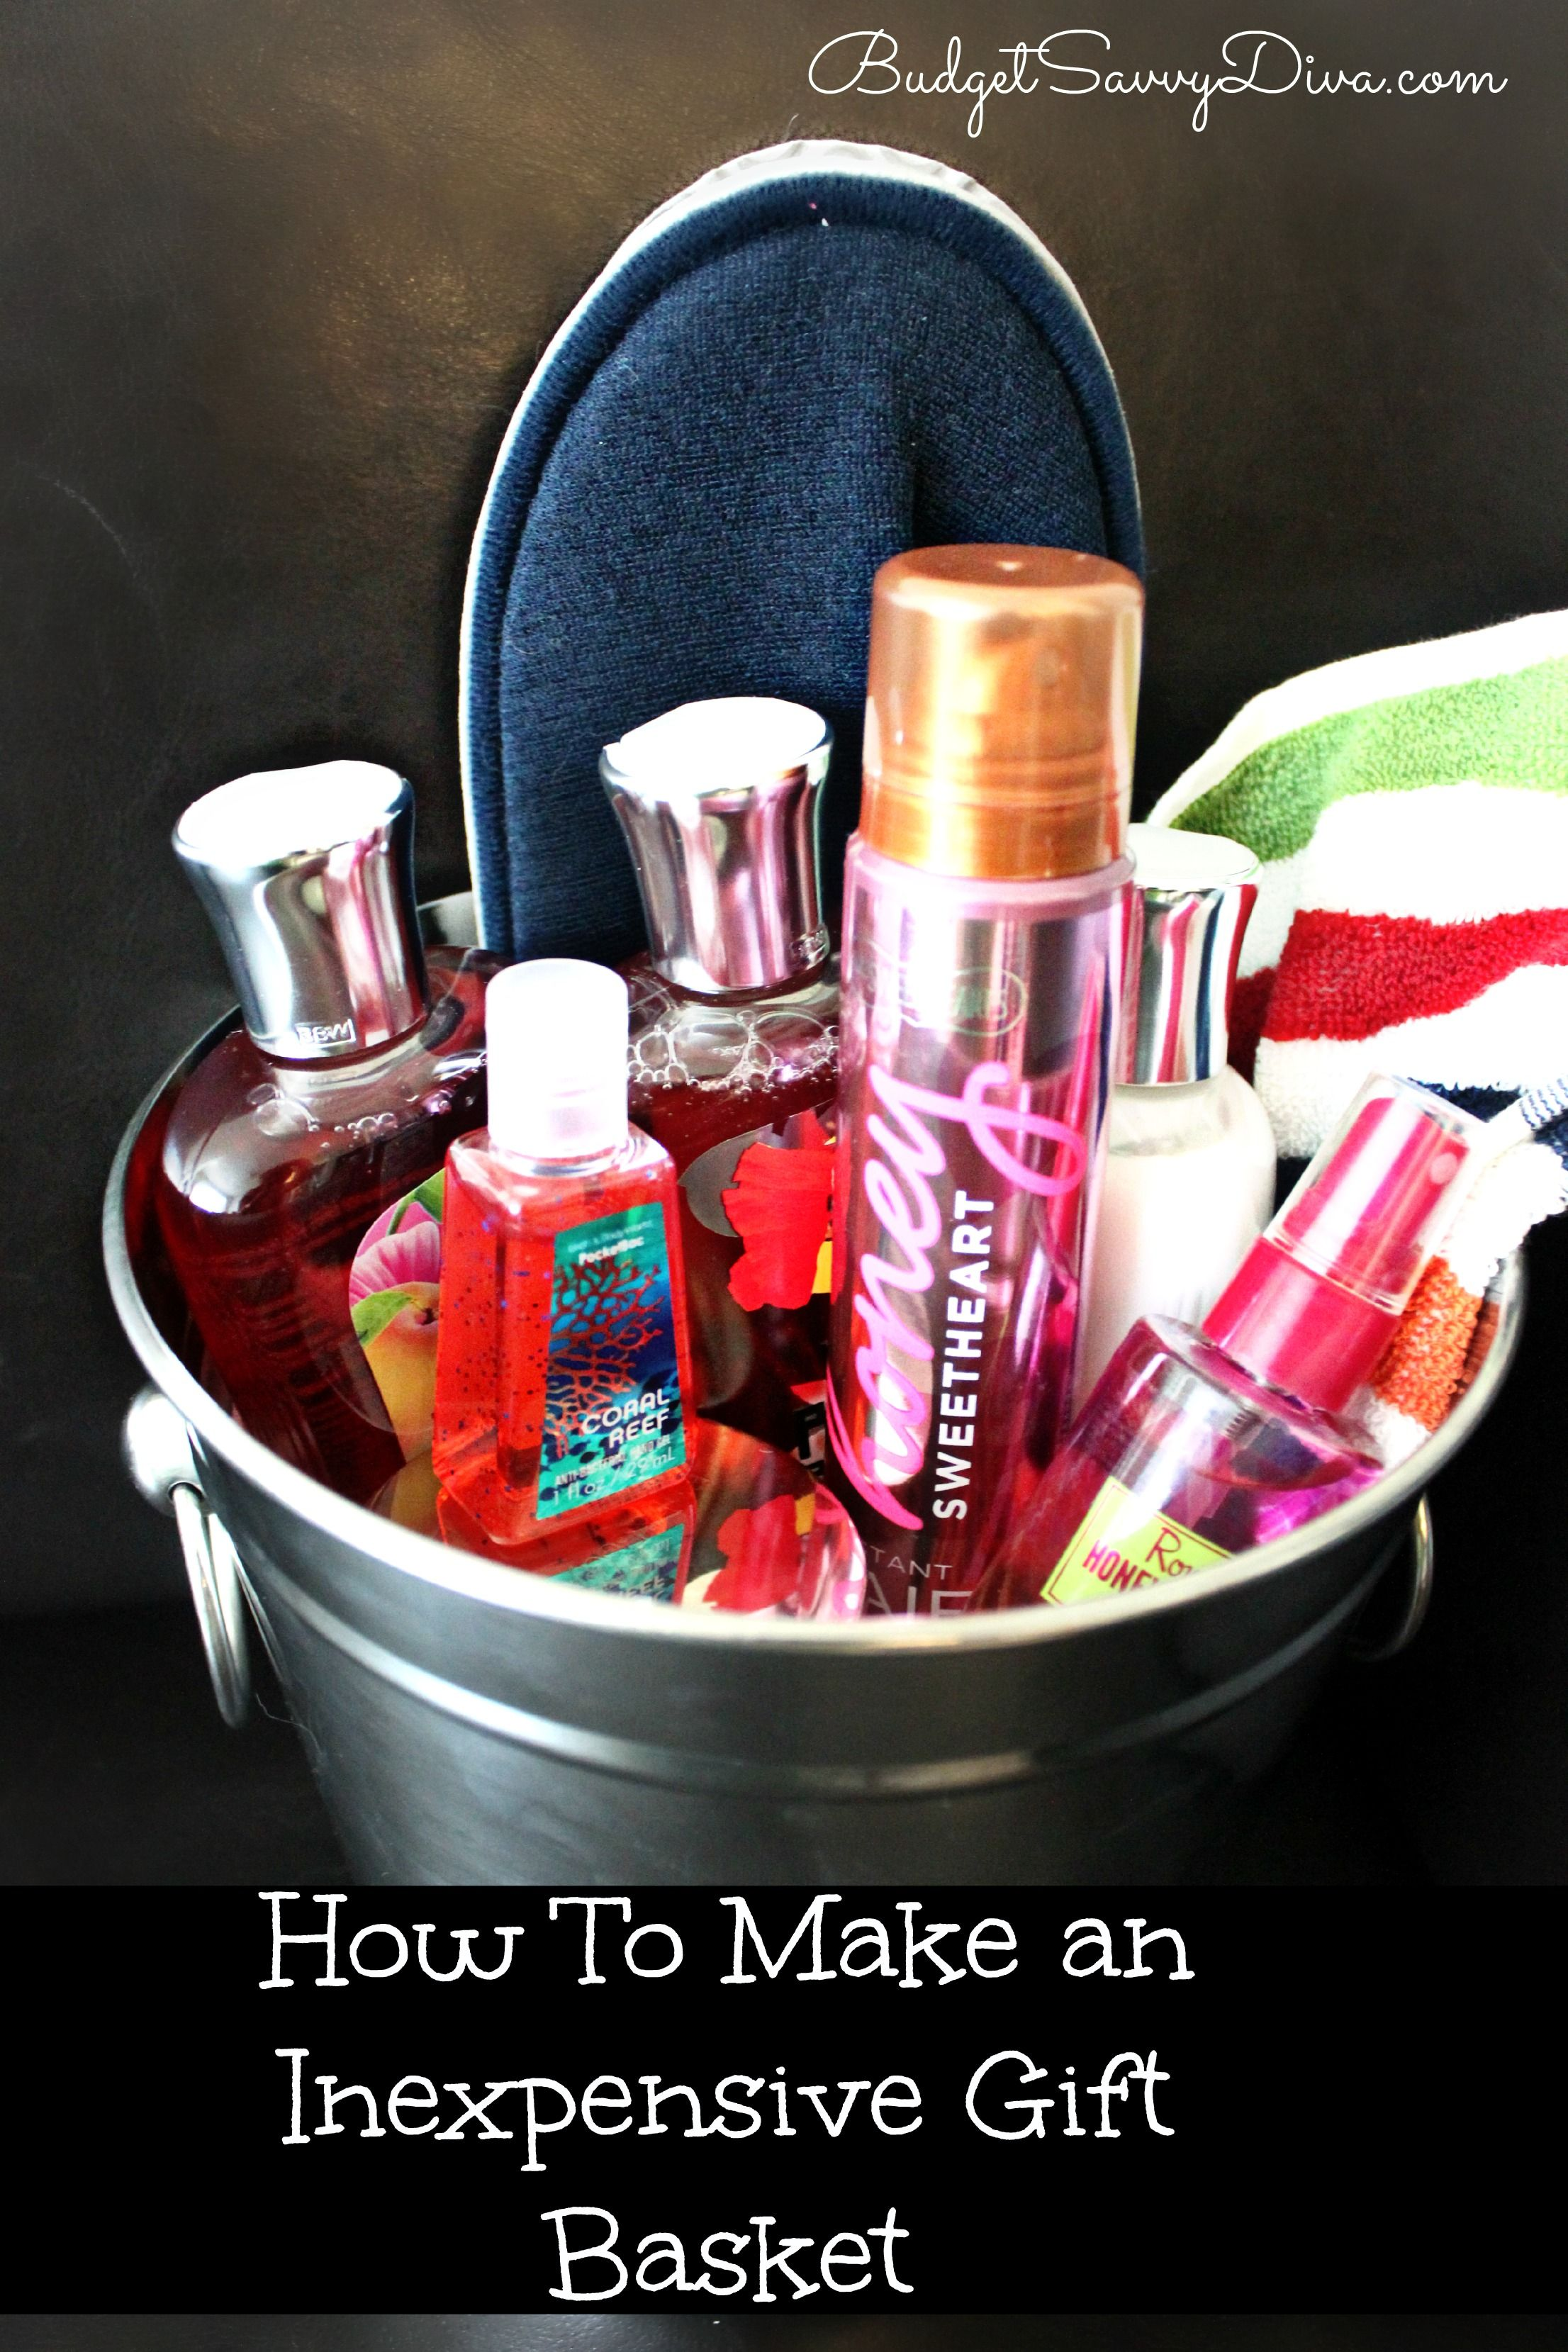 How to Make an Inexpensive Gift Basket | Diy gifts, Gift ...